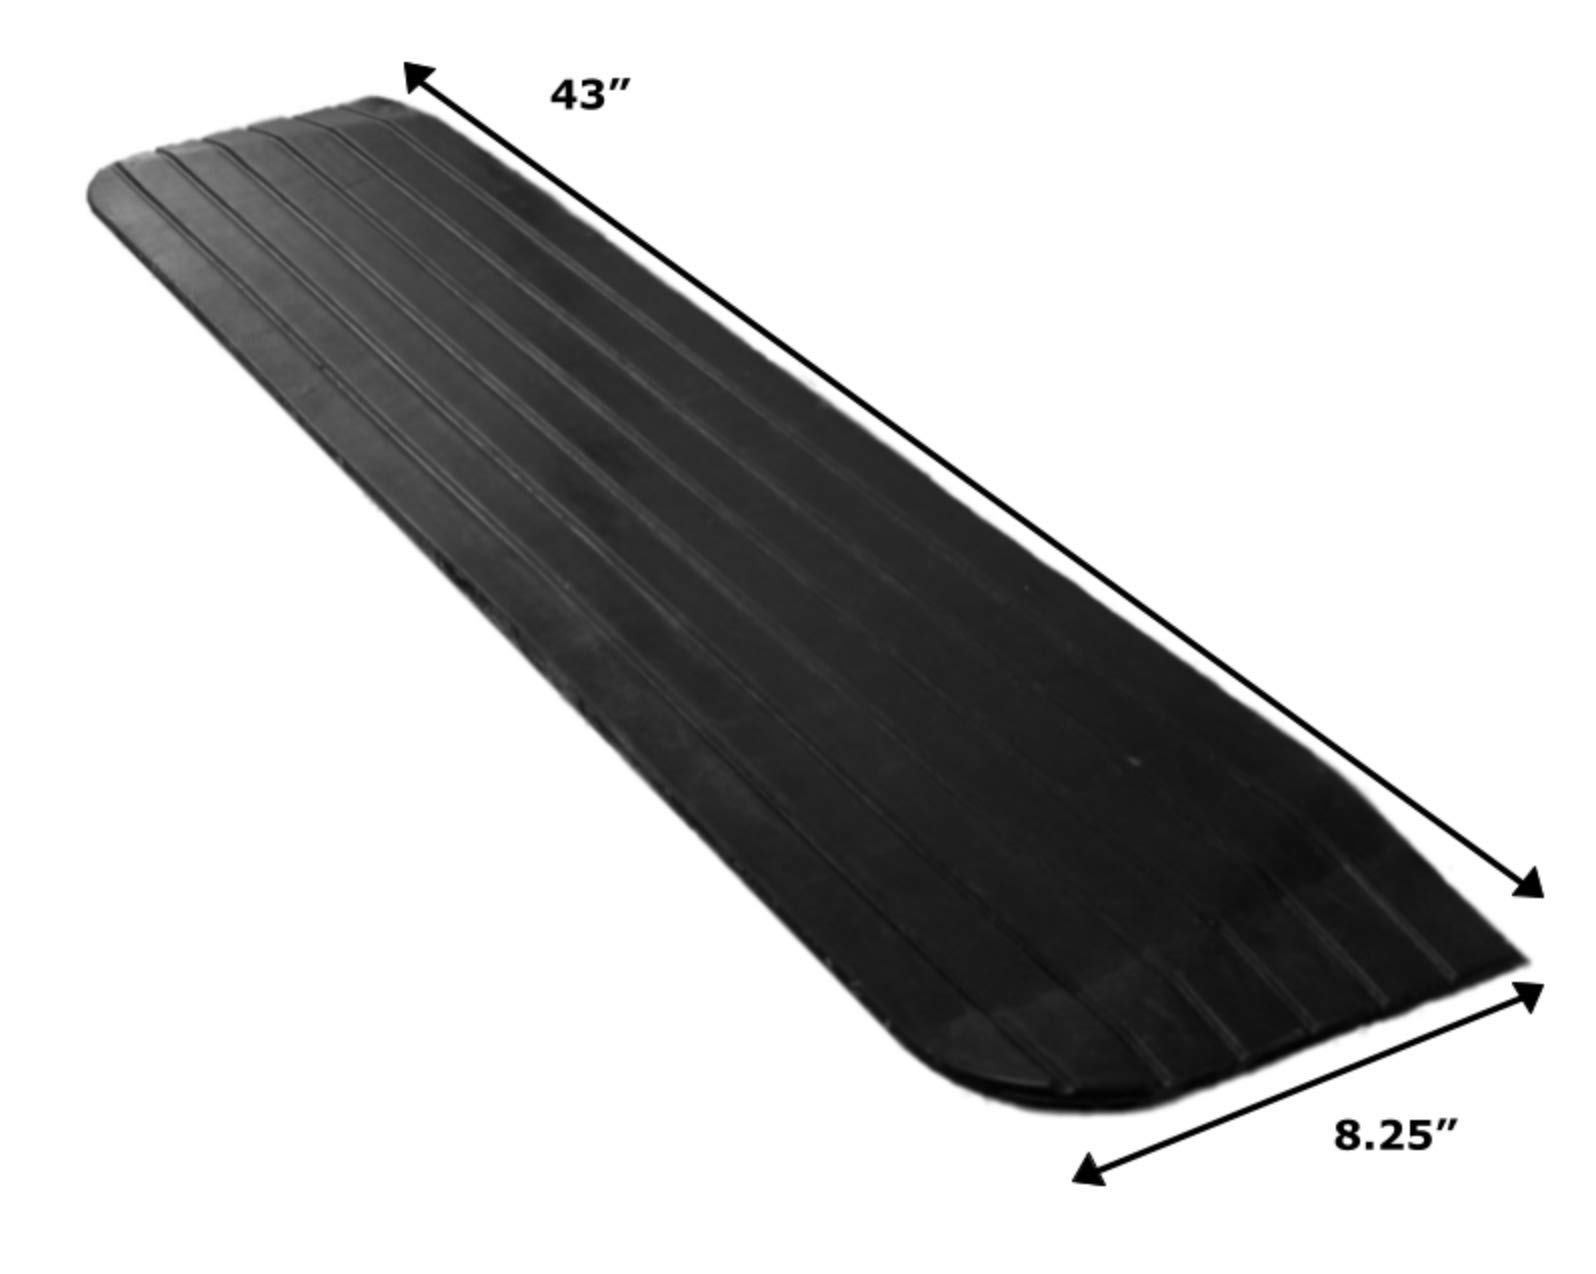 Foghorn Construction- 1 Inch High Threshold Ramp for Door, 43 Wide, Wheelchair, Doorway Ramps and Any Opening Where The sill has a Tripping Hazard in The Way. Heavy and Strong for Powered Wheelchairs by Foghorn Construction